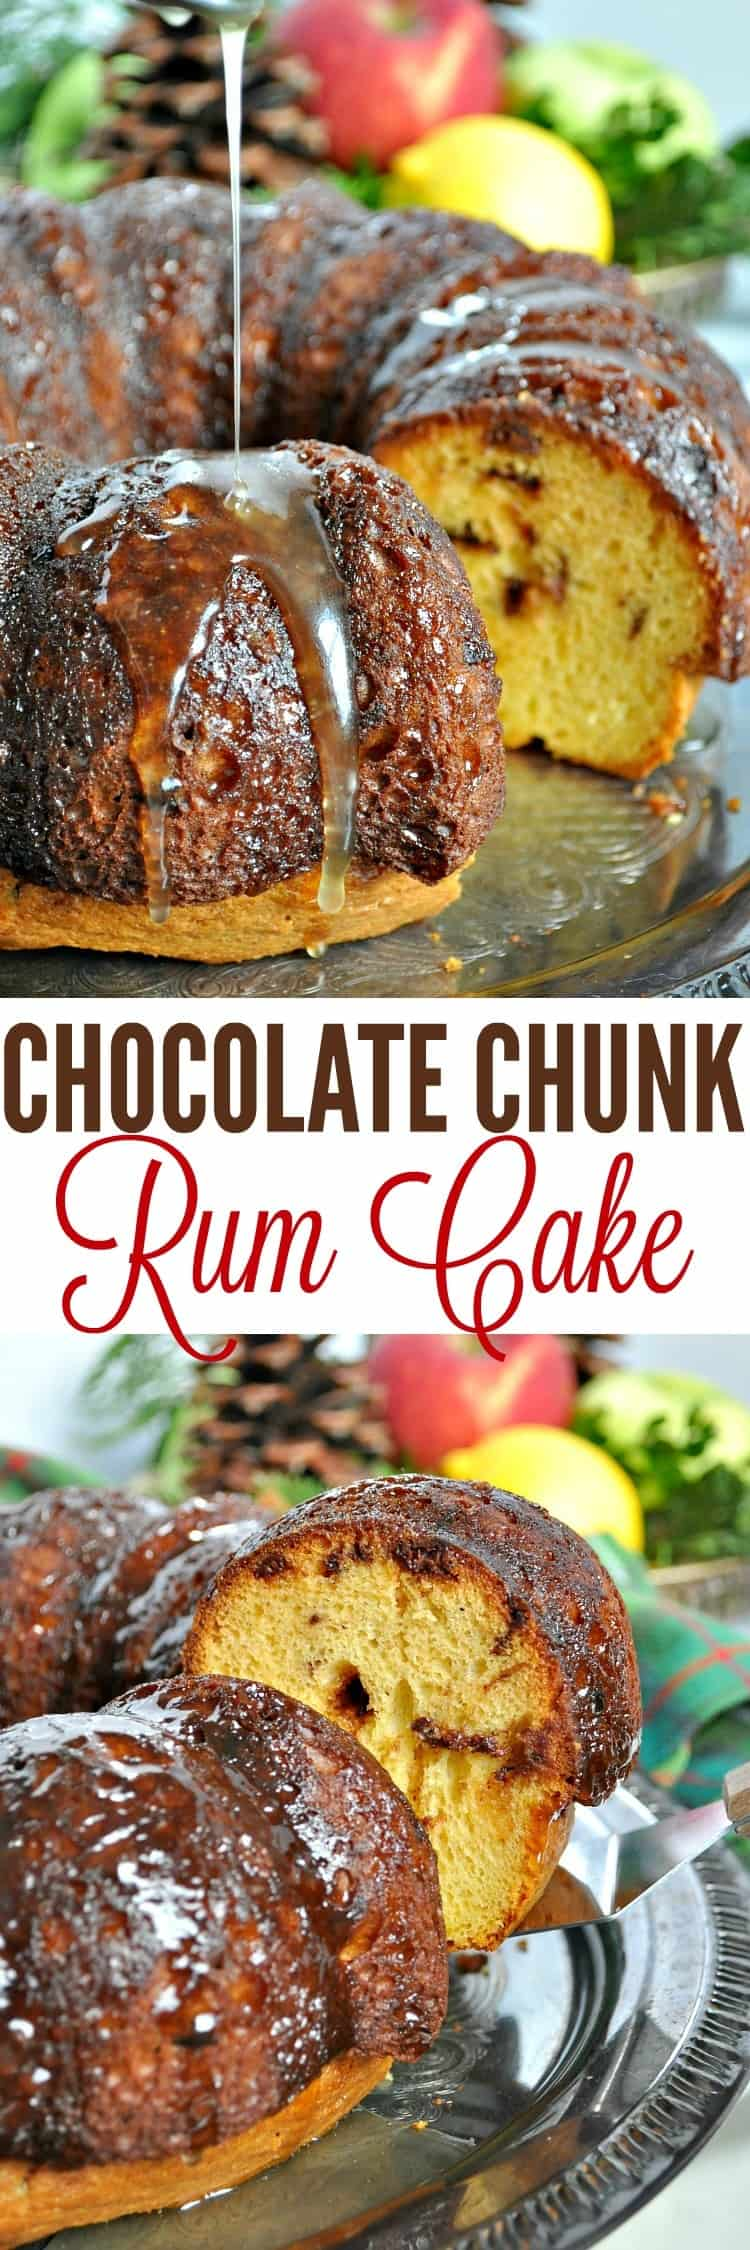 Chocolate Chunk Rum Cake is a delicious and EASY holiday dessert!